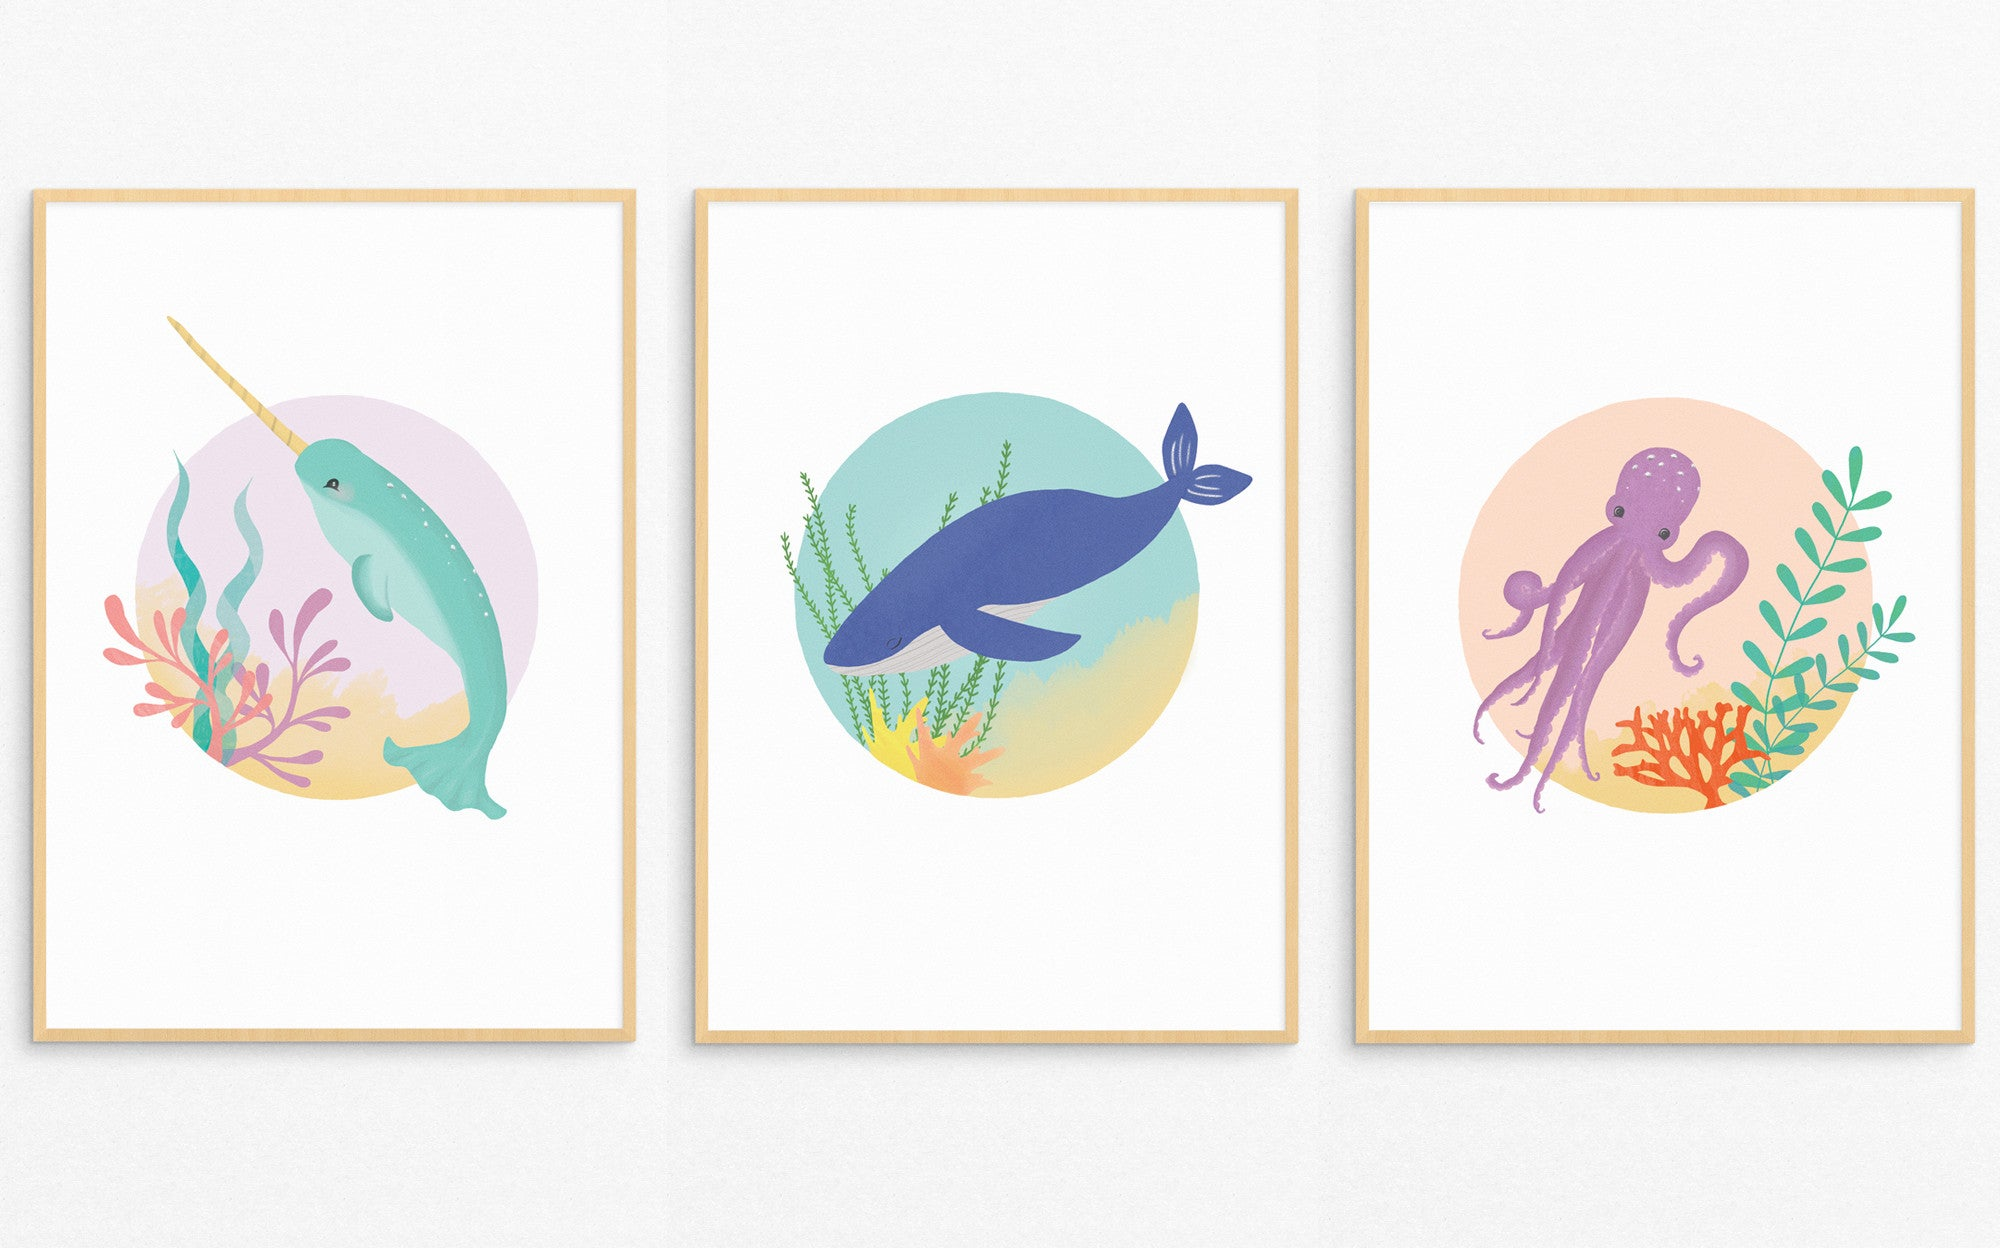 Narwhal, Whale and Octopus sea-themed prints by Born Lucky for Bobby Rabbit.